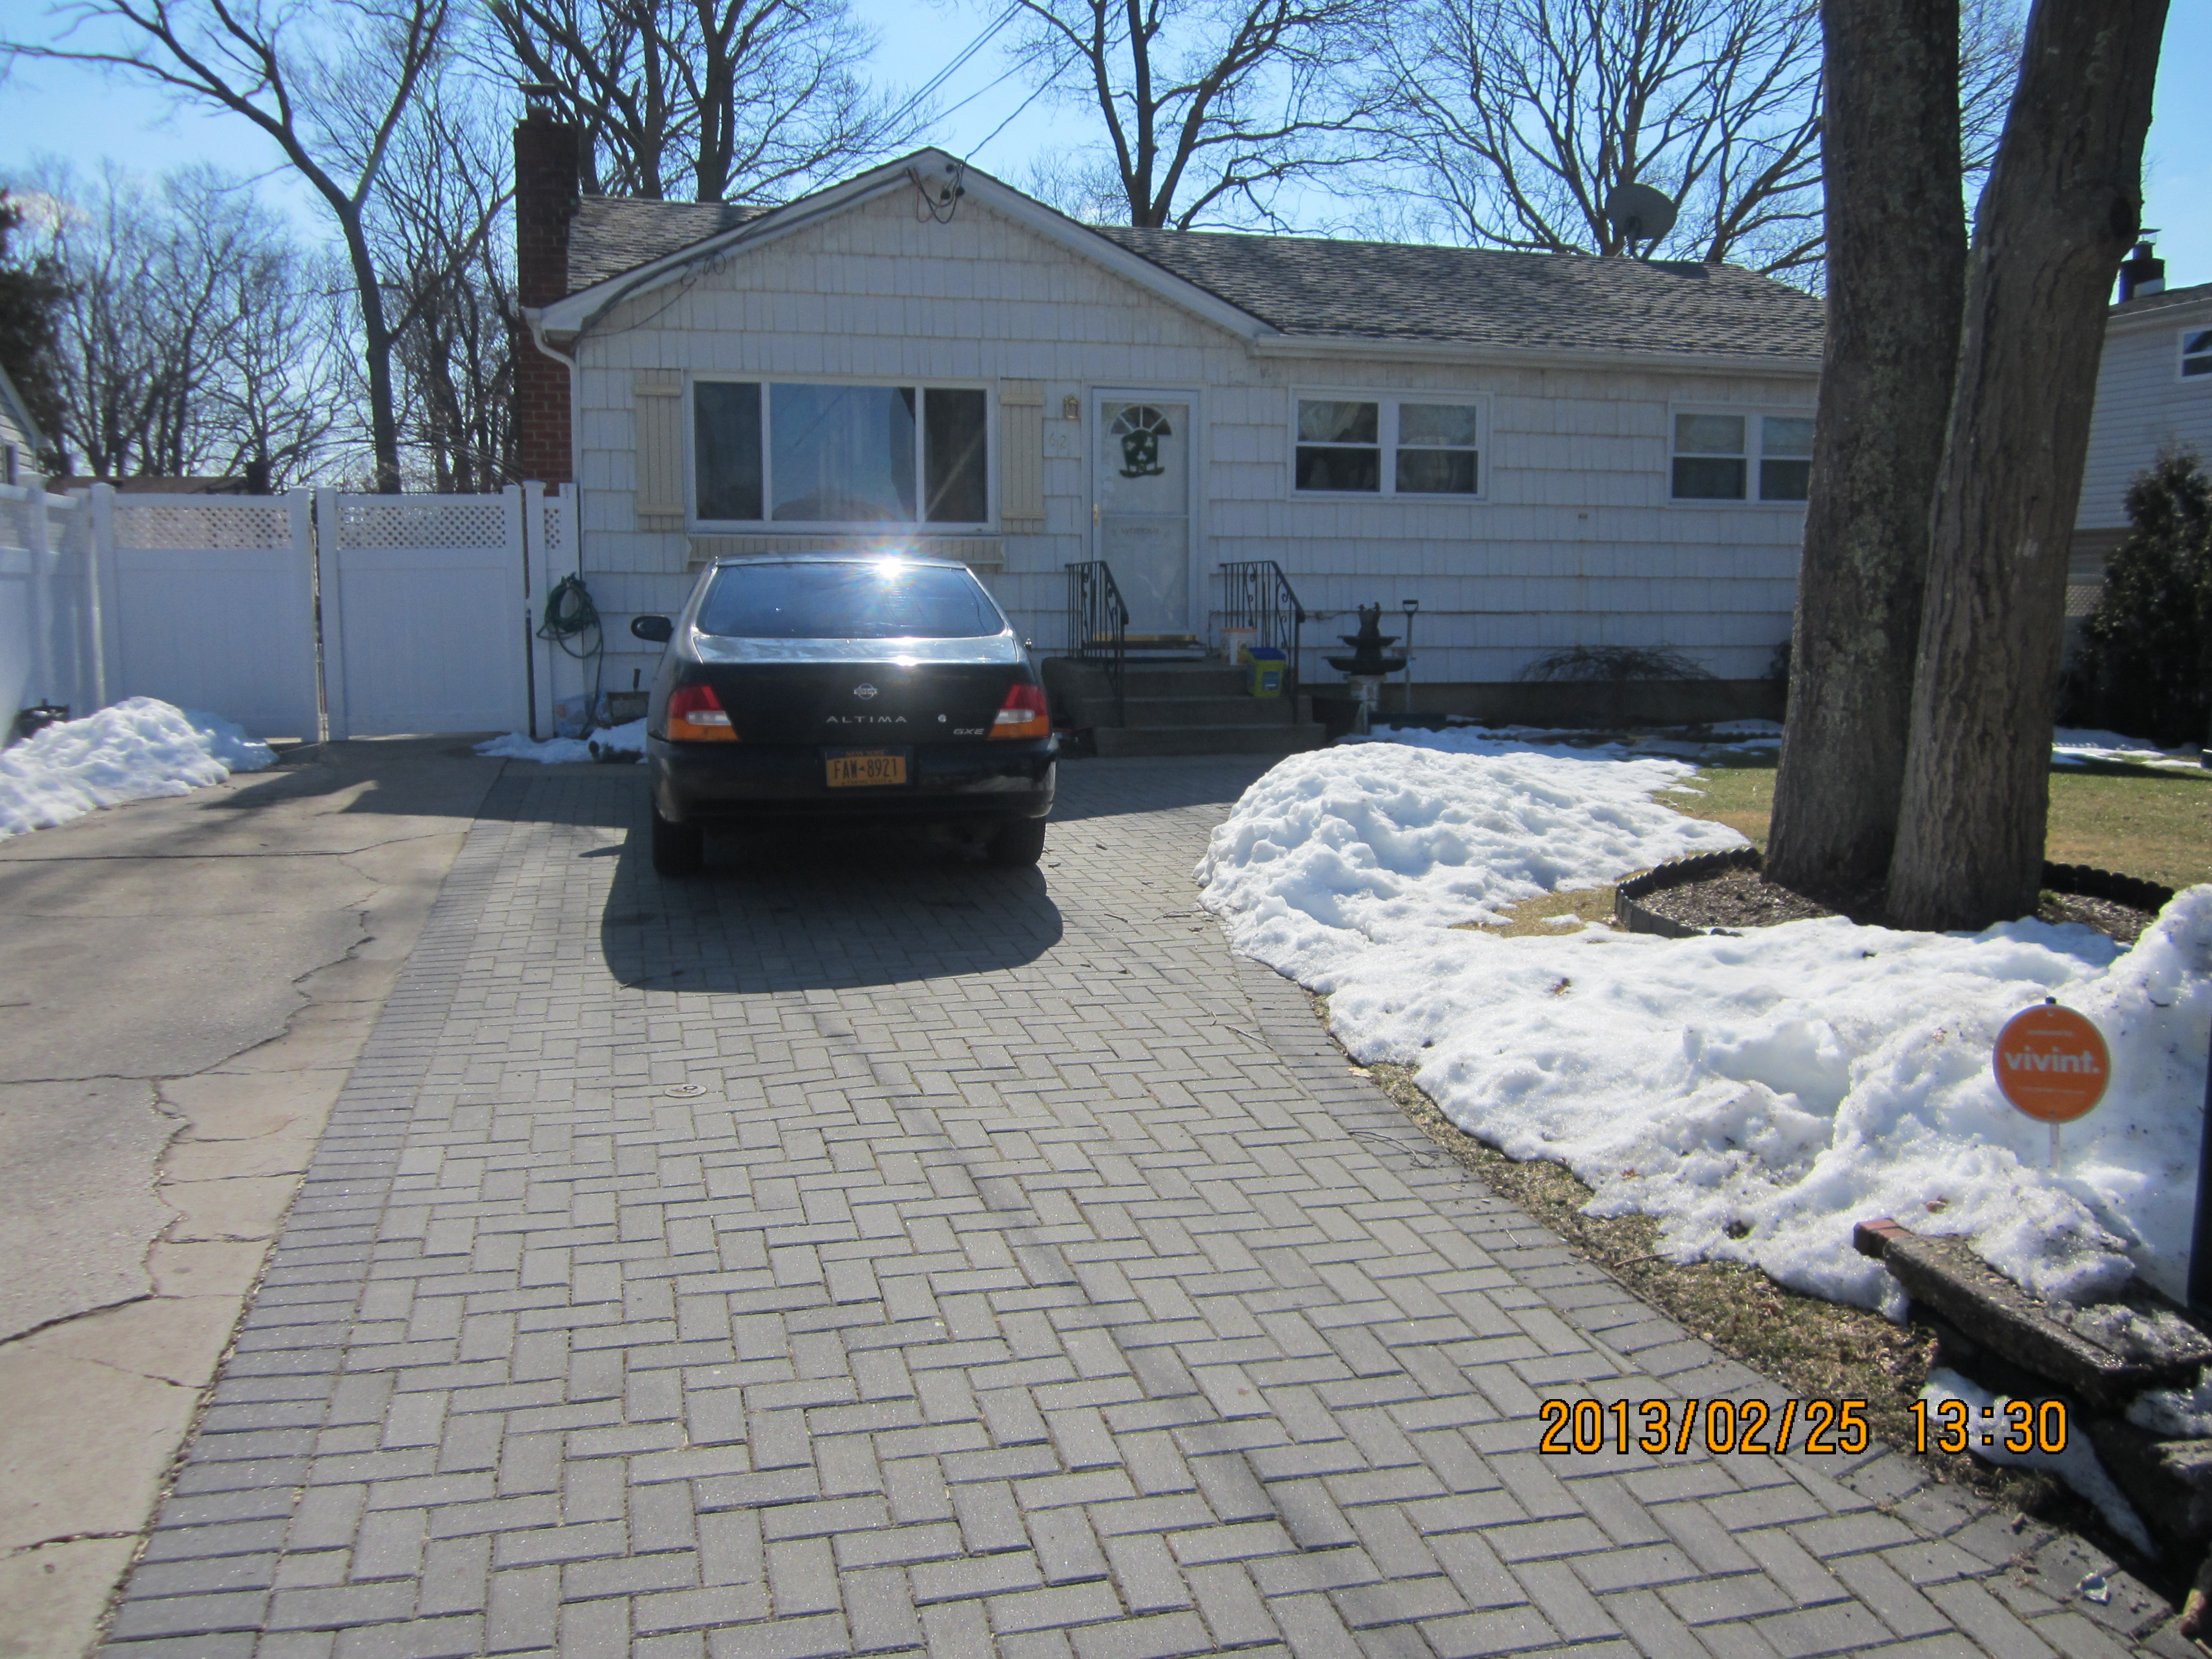 62 Engelke St, Patchogue, NY 11772